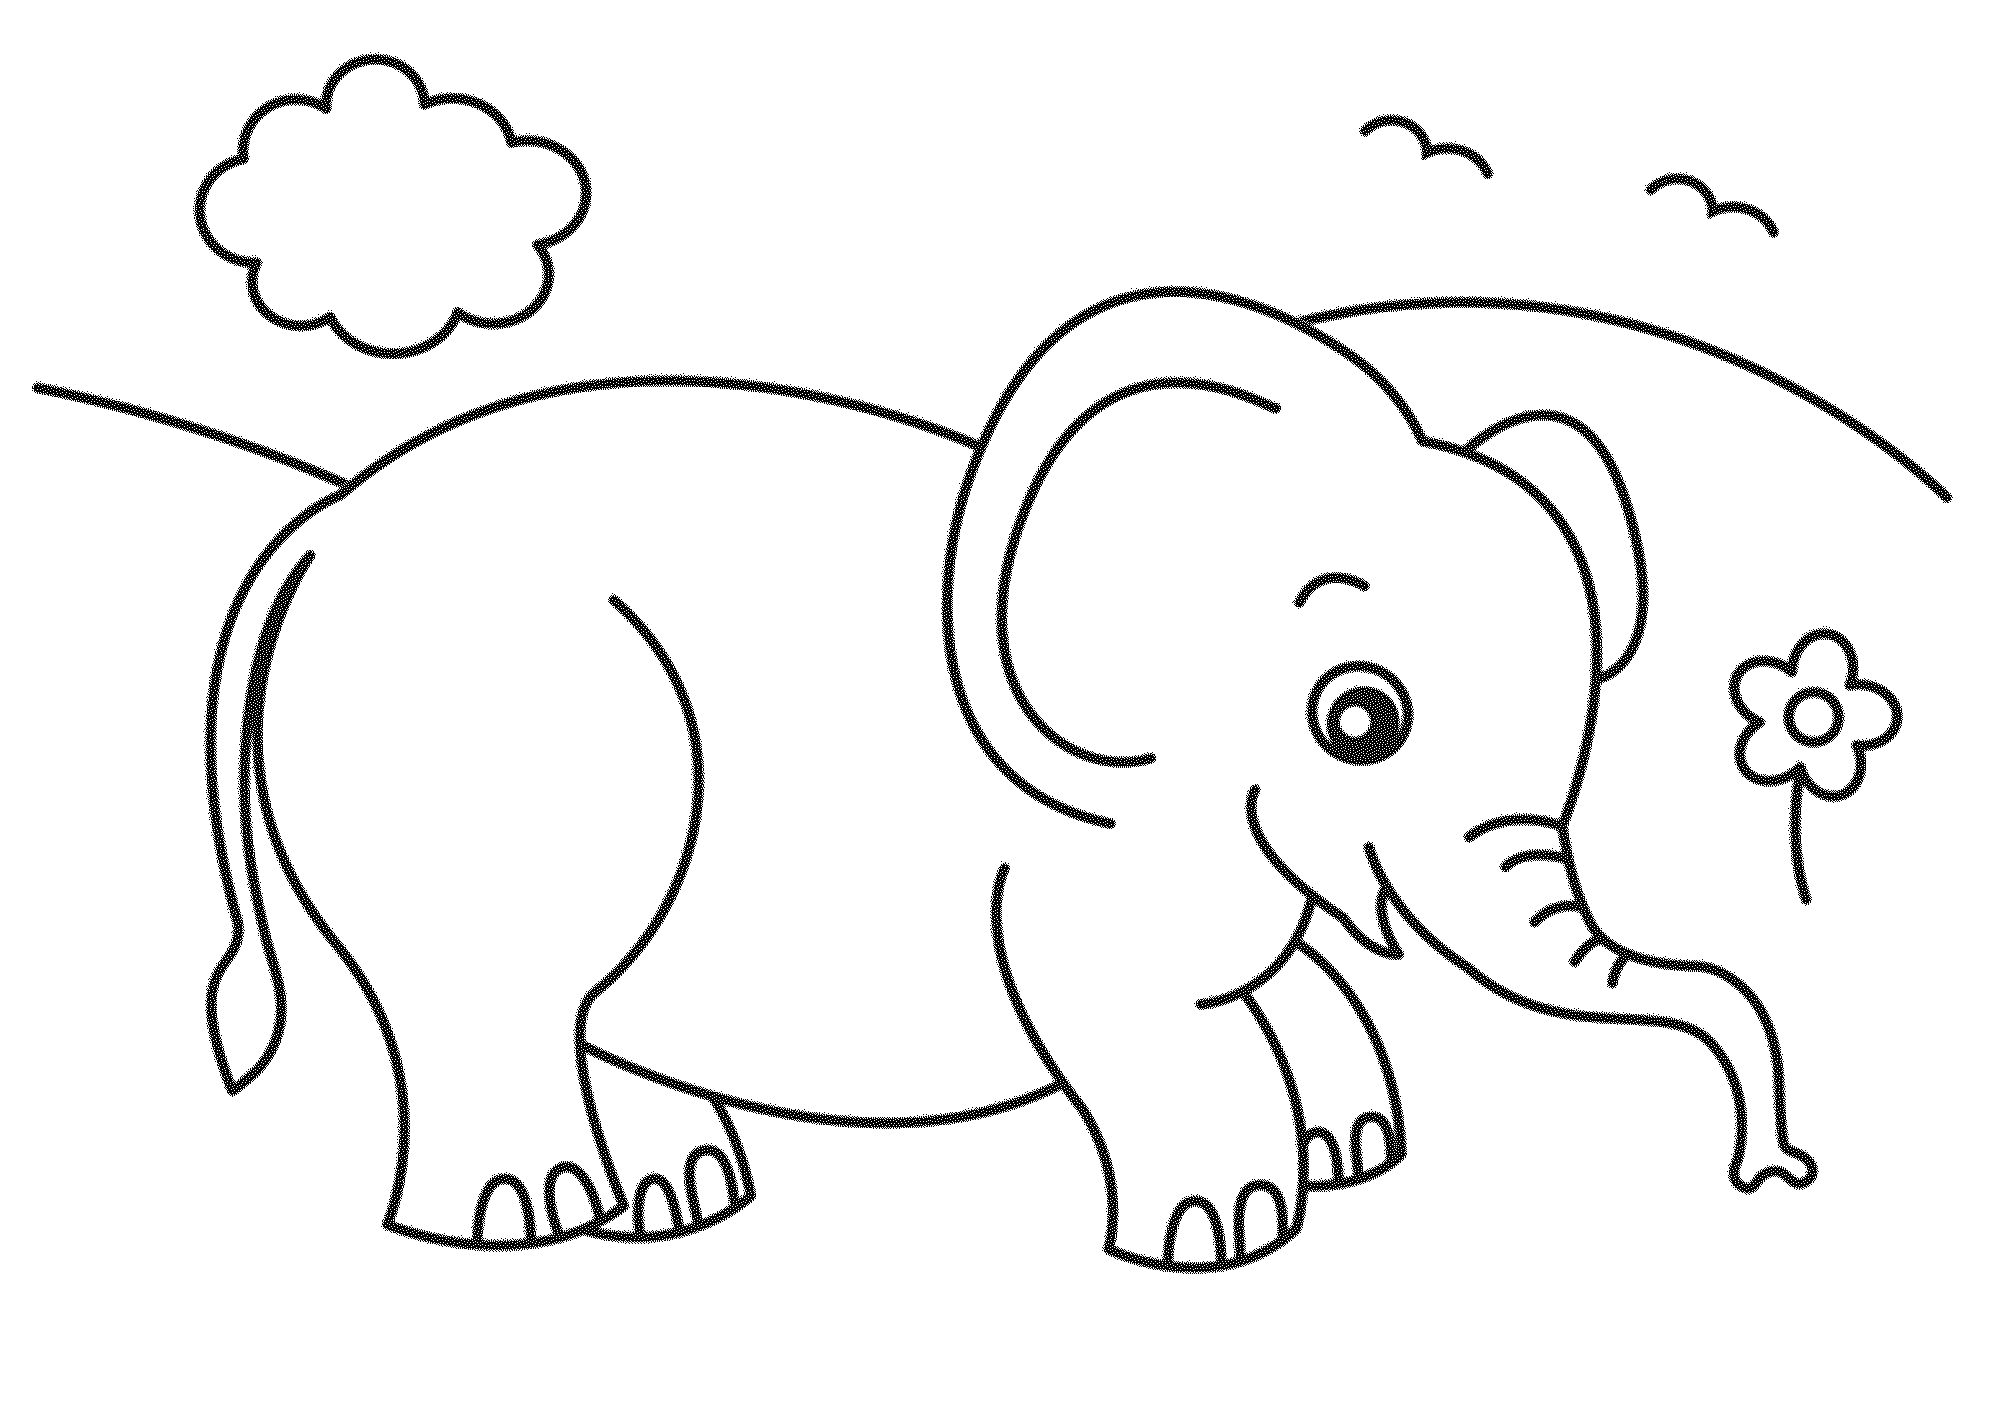 colouring picture of an elephant free elephant coloring pages elephant an colouring picture of